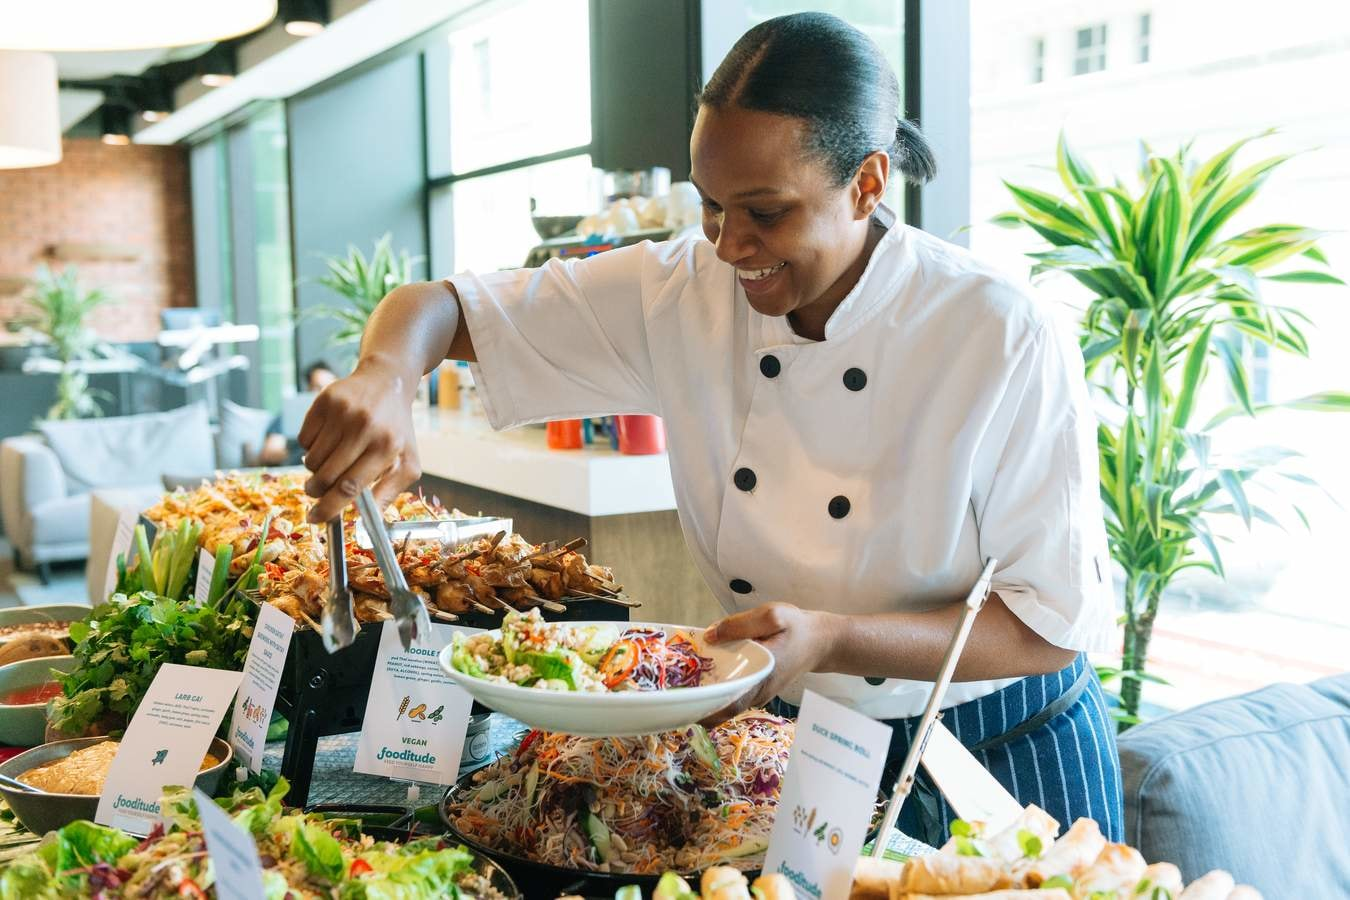 Planet Mark member Footitude catering company